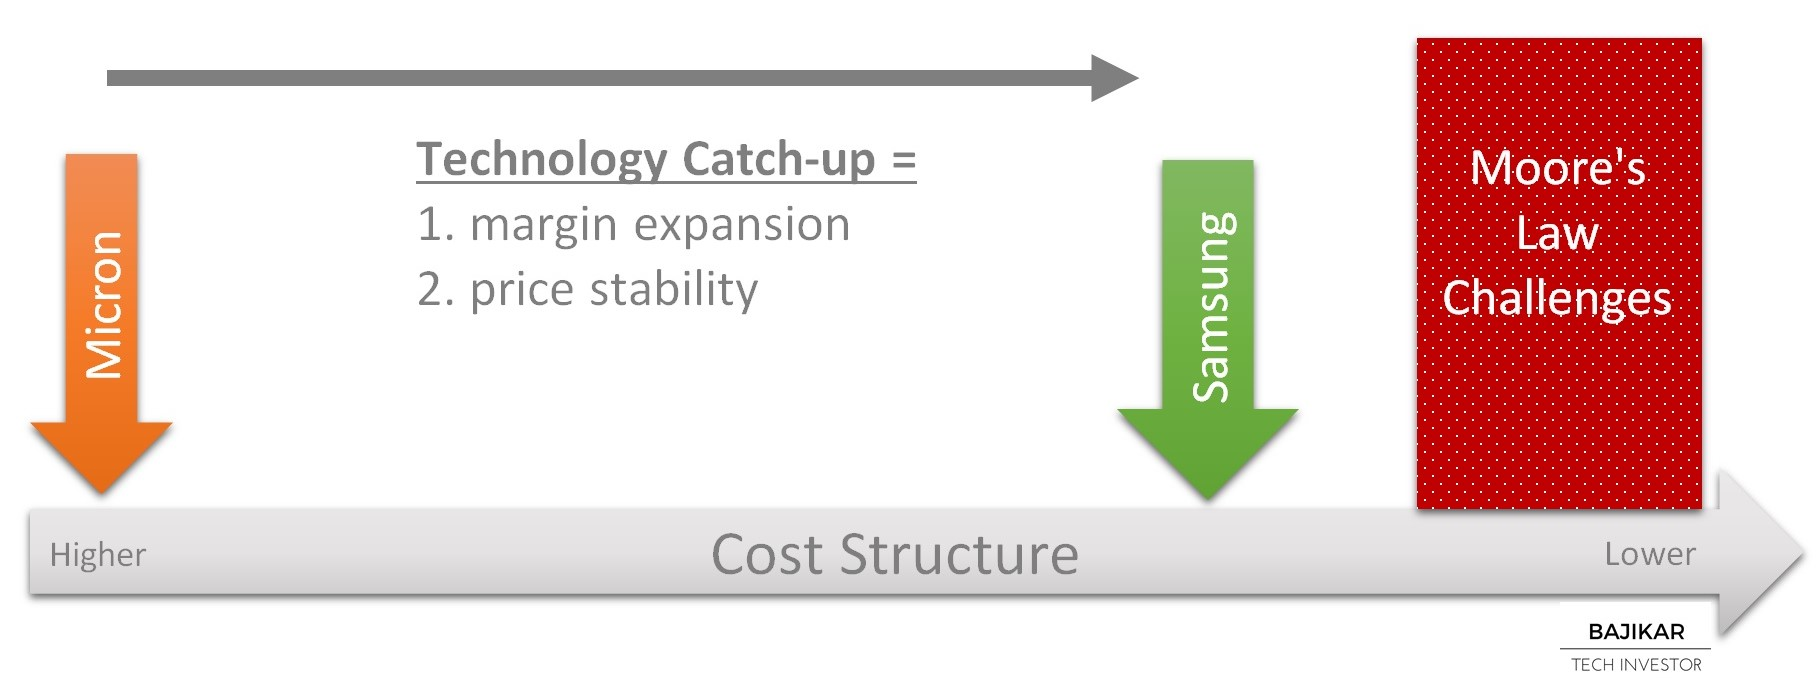 Micron Technology Catch-Up